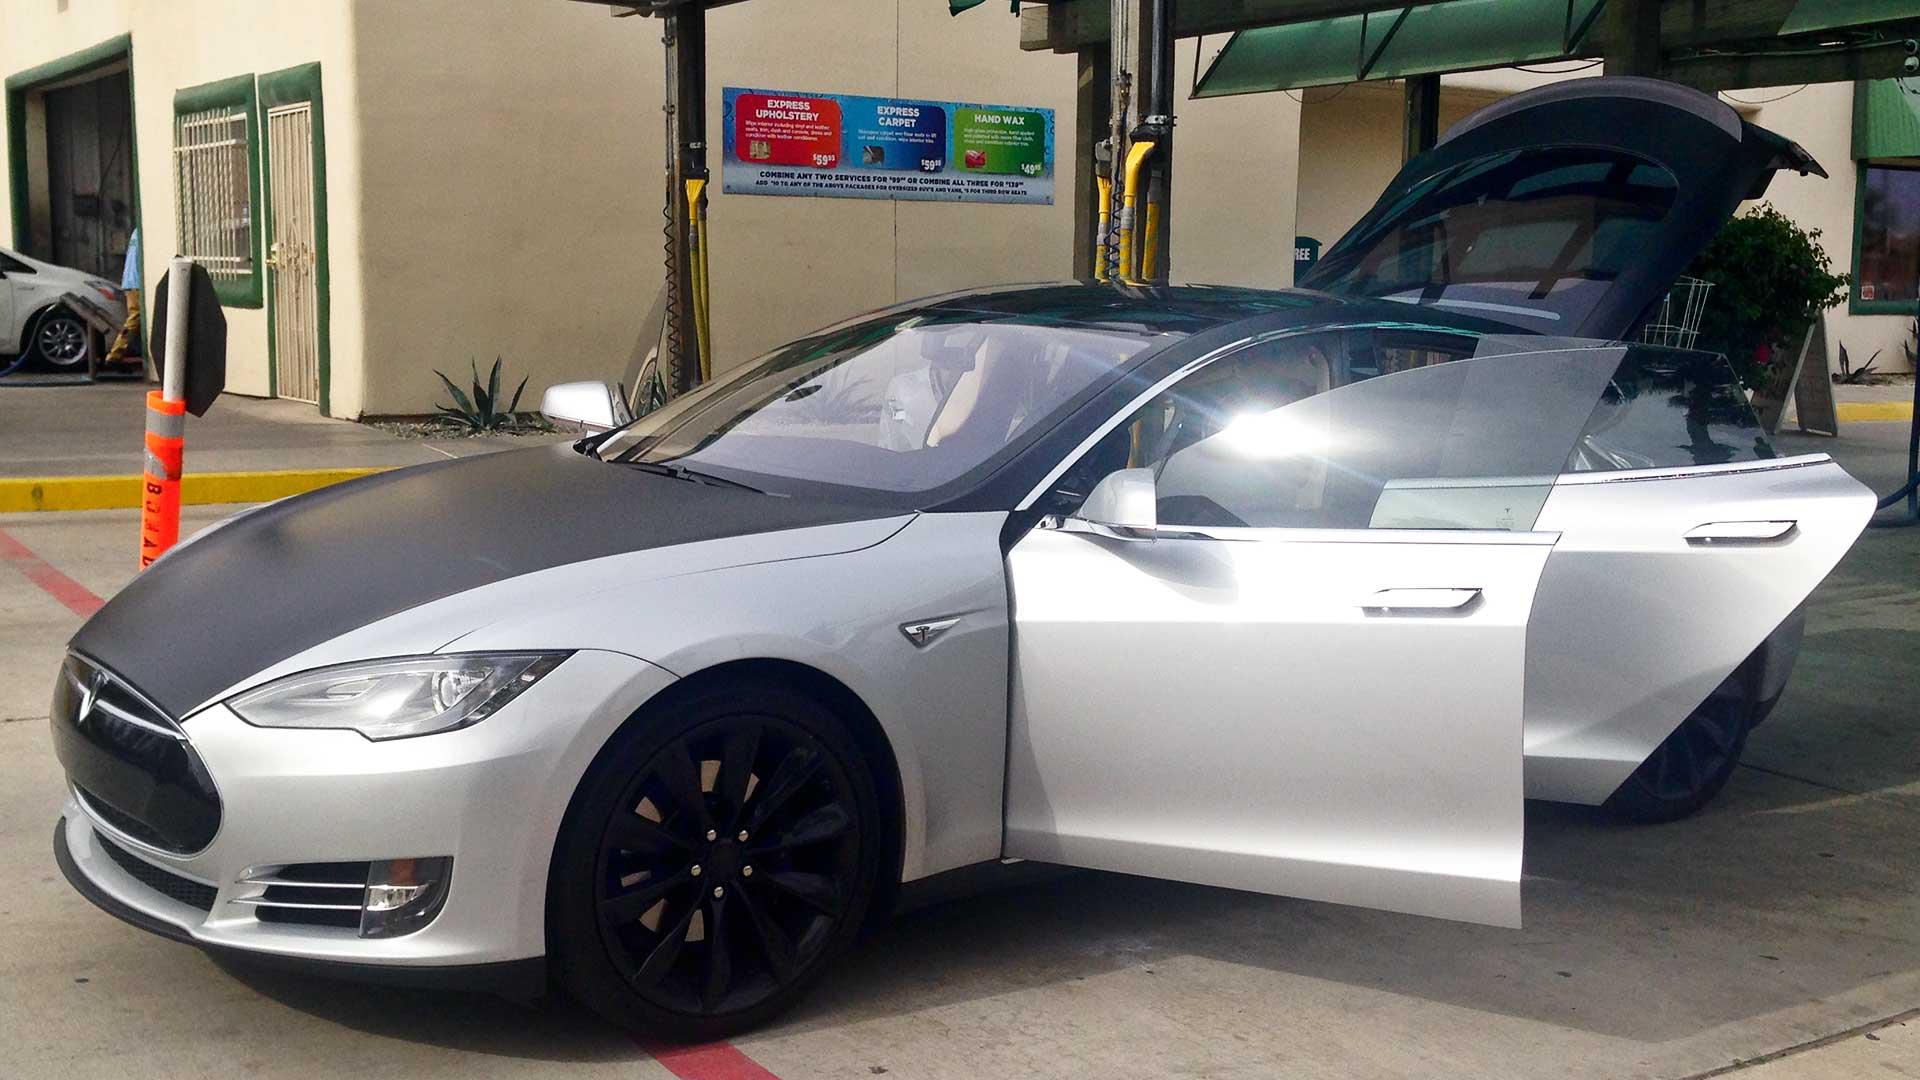 black-and-grey-tesla-at-cathedral-city-car-wash